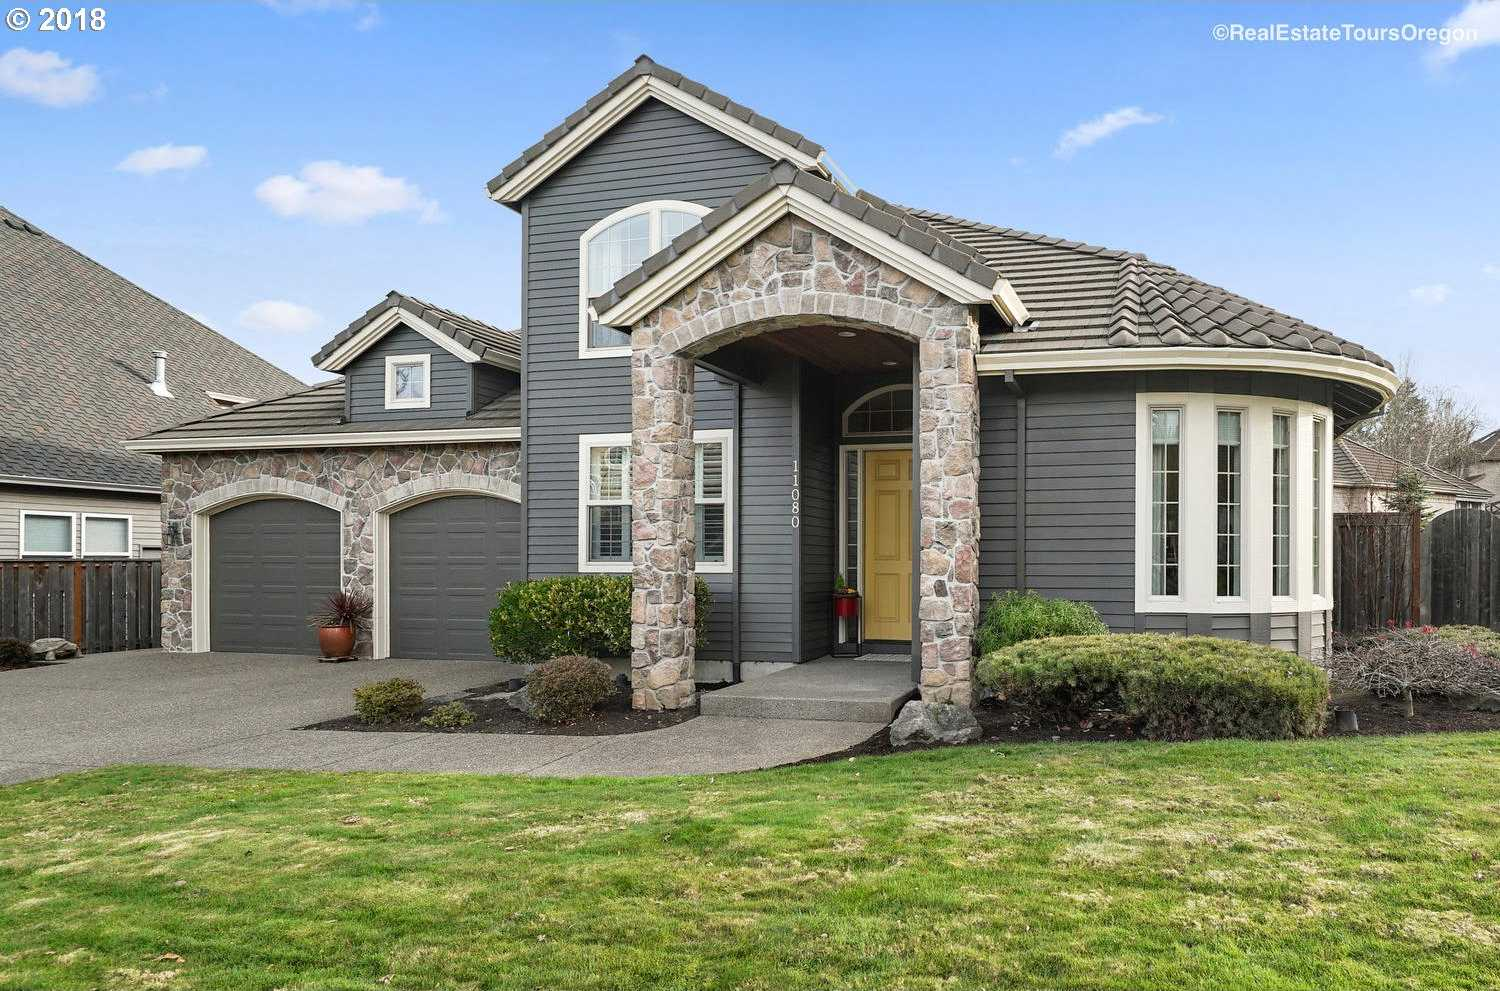 $689,000 - 4Br/3Ba -  for Sale in Hedges Park, Tualatin